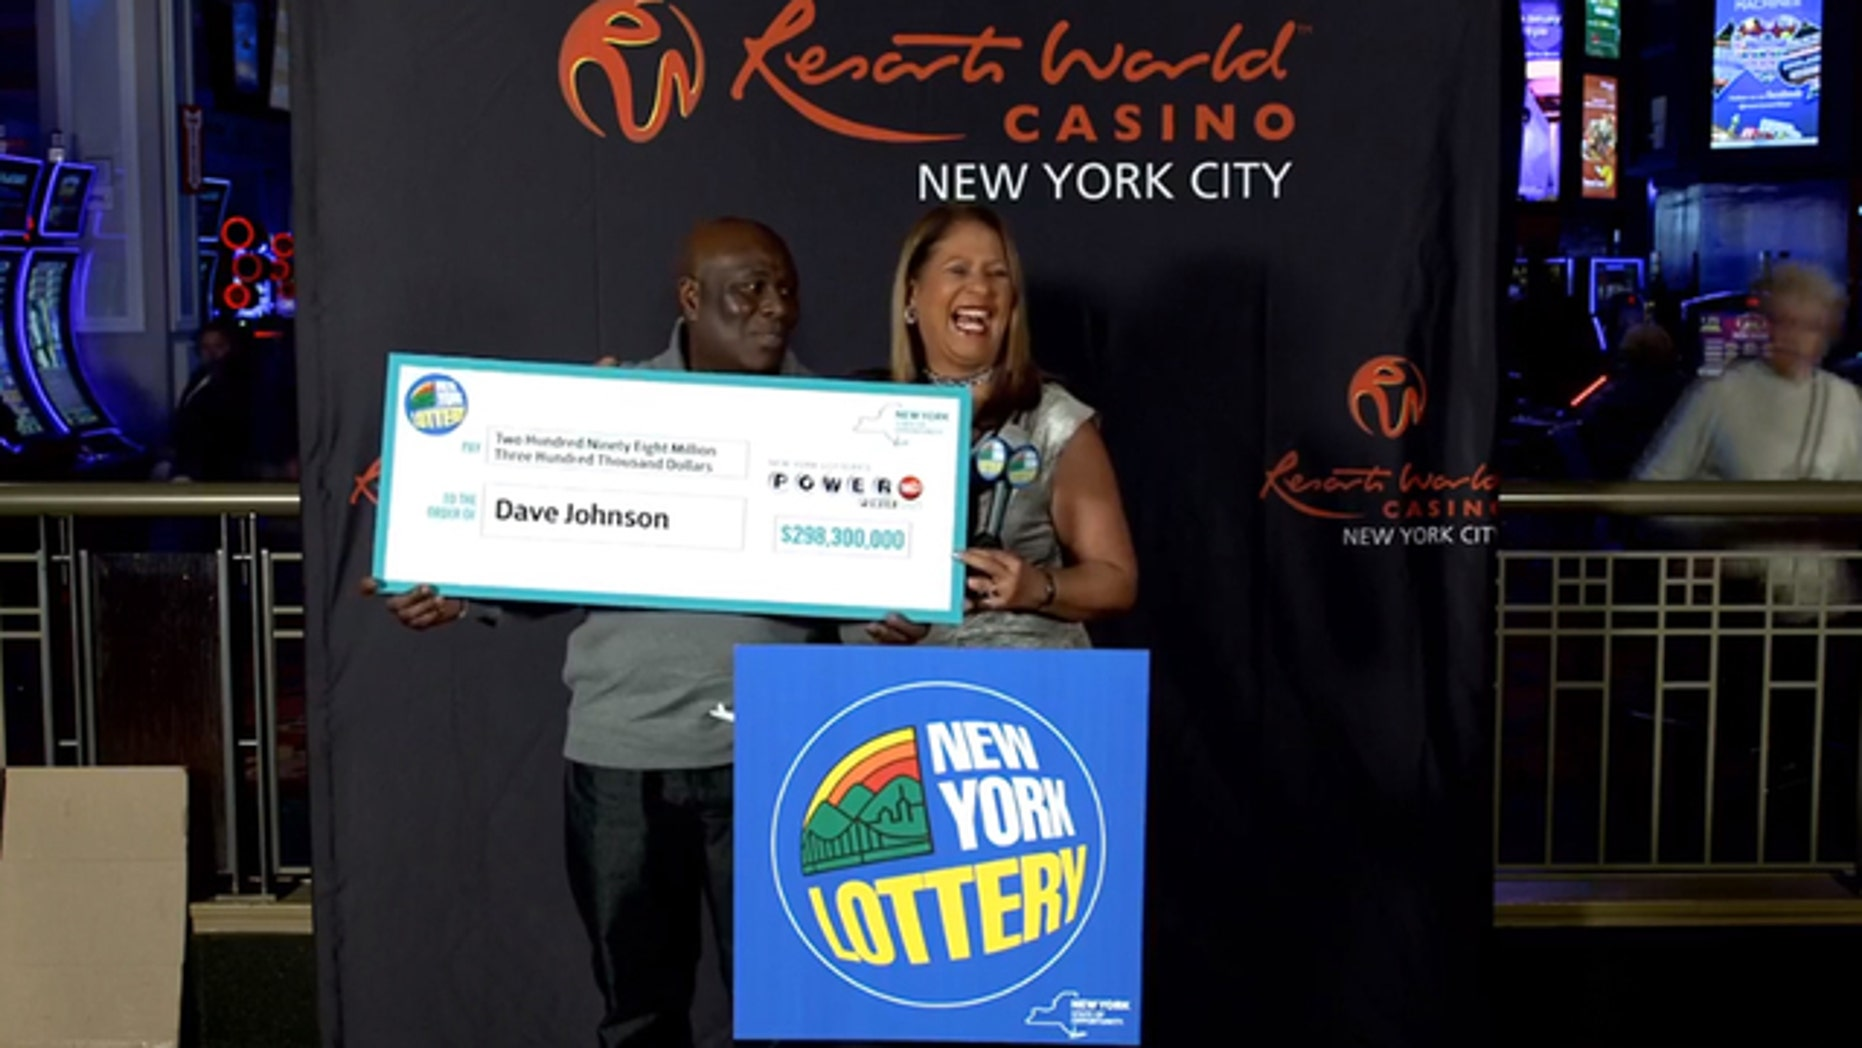 Brooklyn Truck Driver Wins $298.3 Million Powerball Jackpot